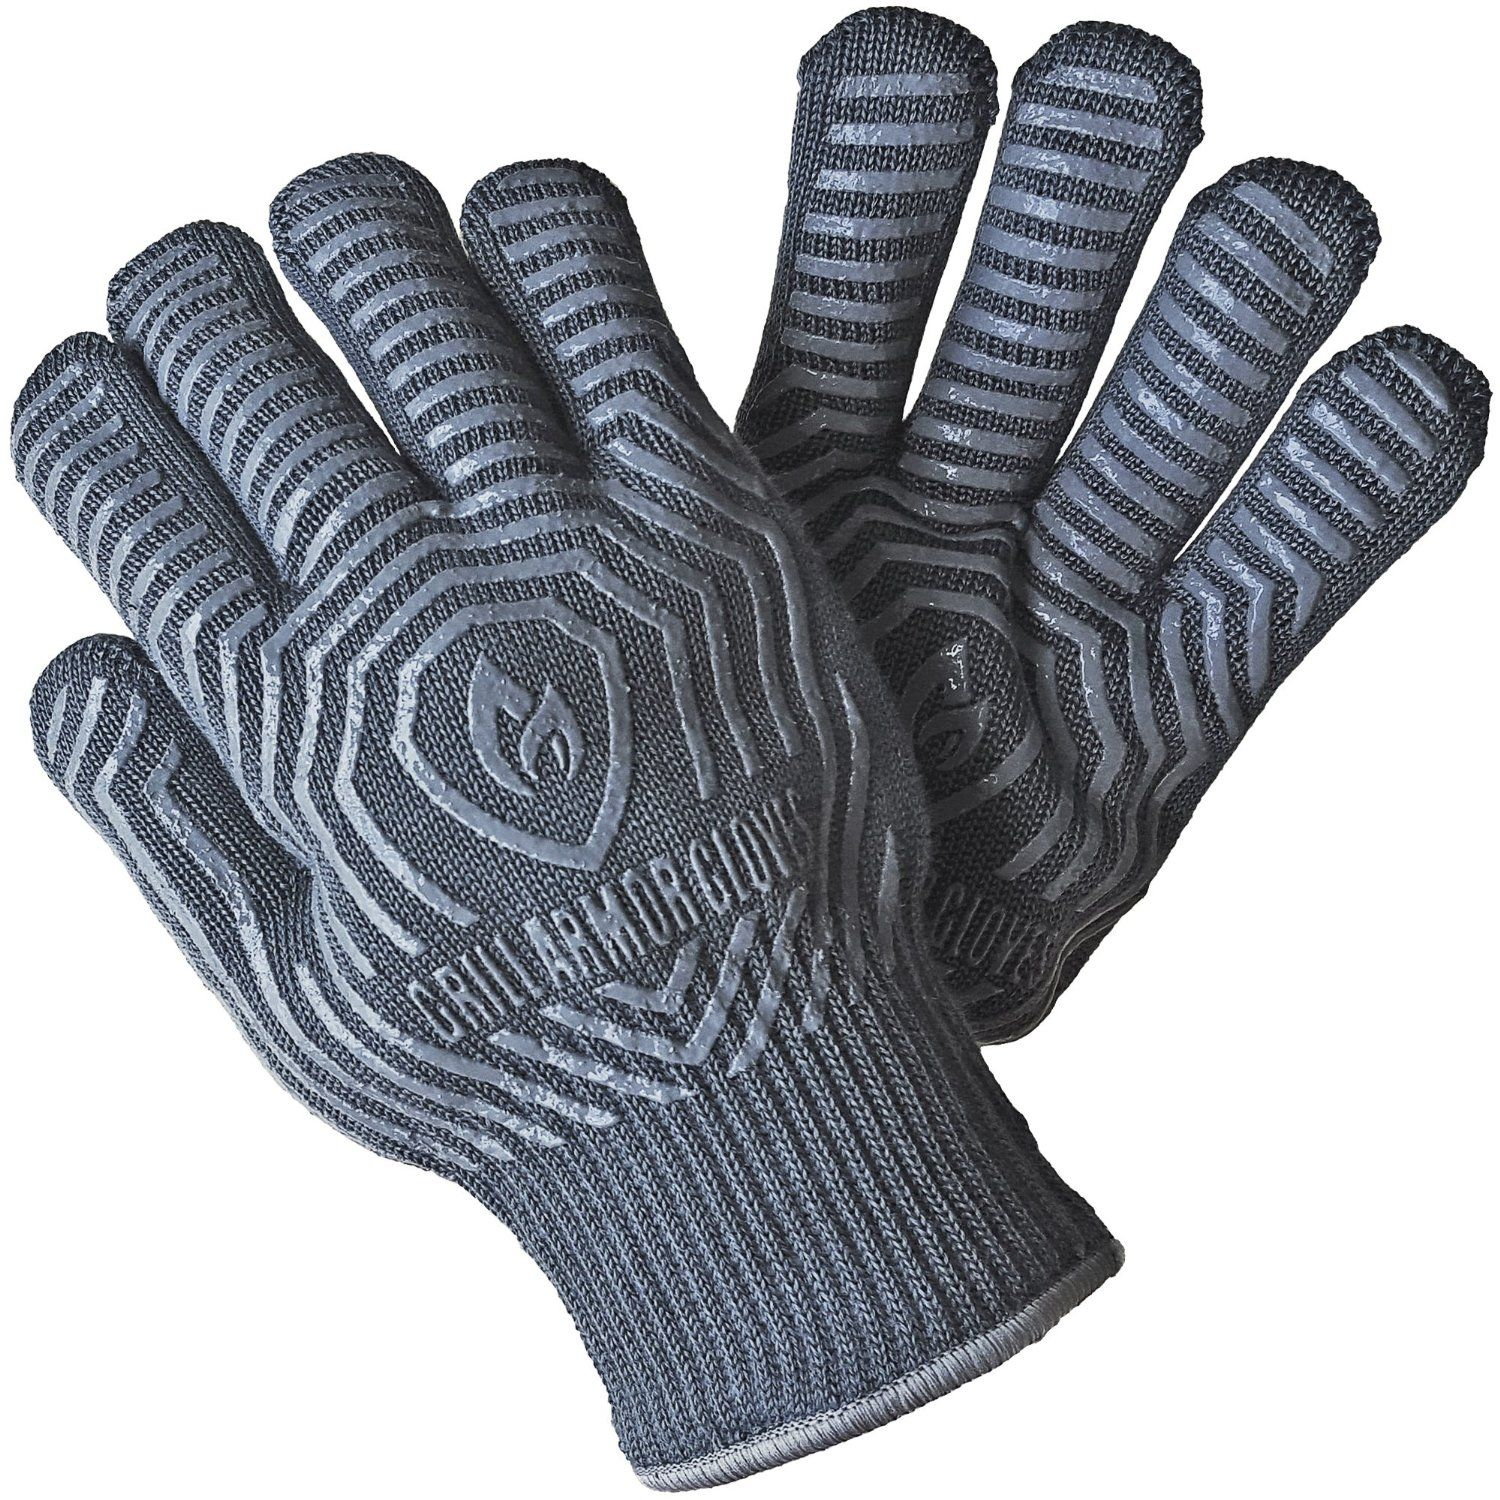 I Love These Oven Gloves on Amazon.com! 50% OFF From 7-15 September 2015 Code:  GAGOFF05 http://www.amazon.com/932%C2%B0F-Extreme-Heat-Resistant-Gloves/dp/B00ZORPCGG